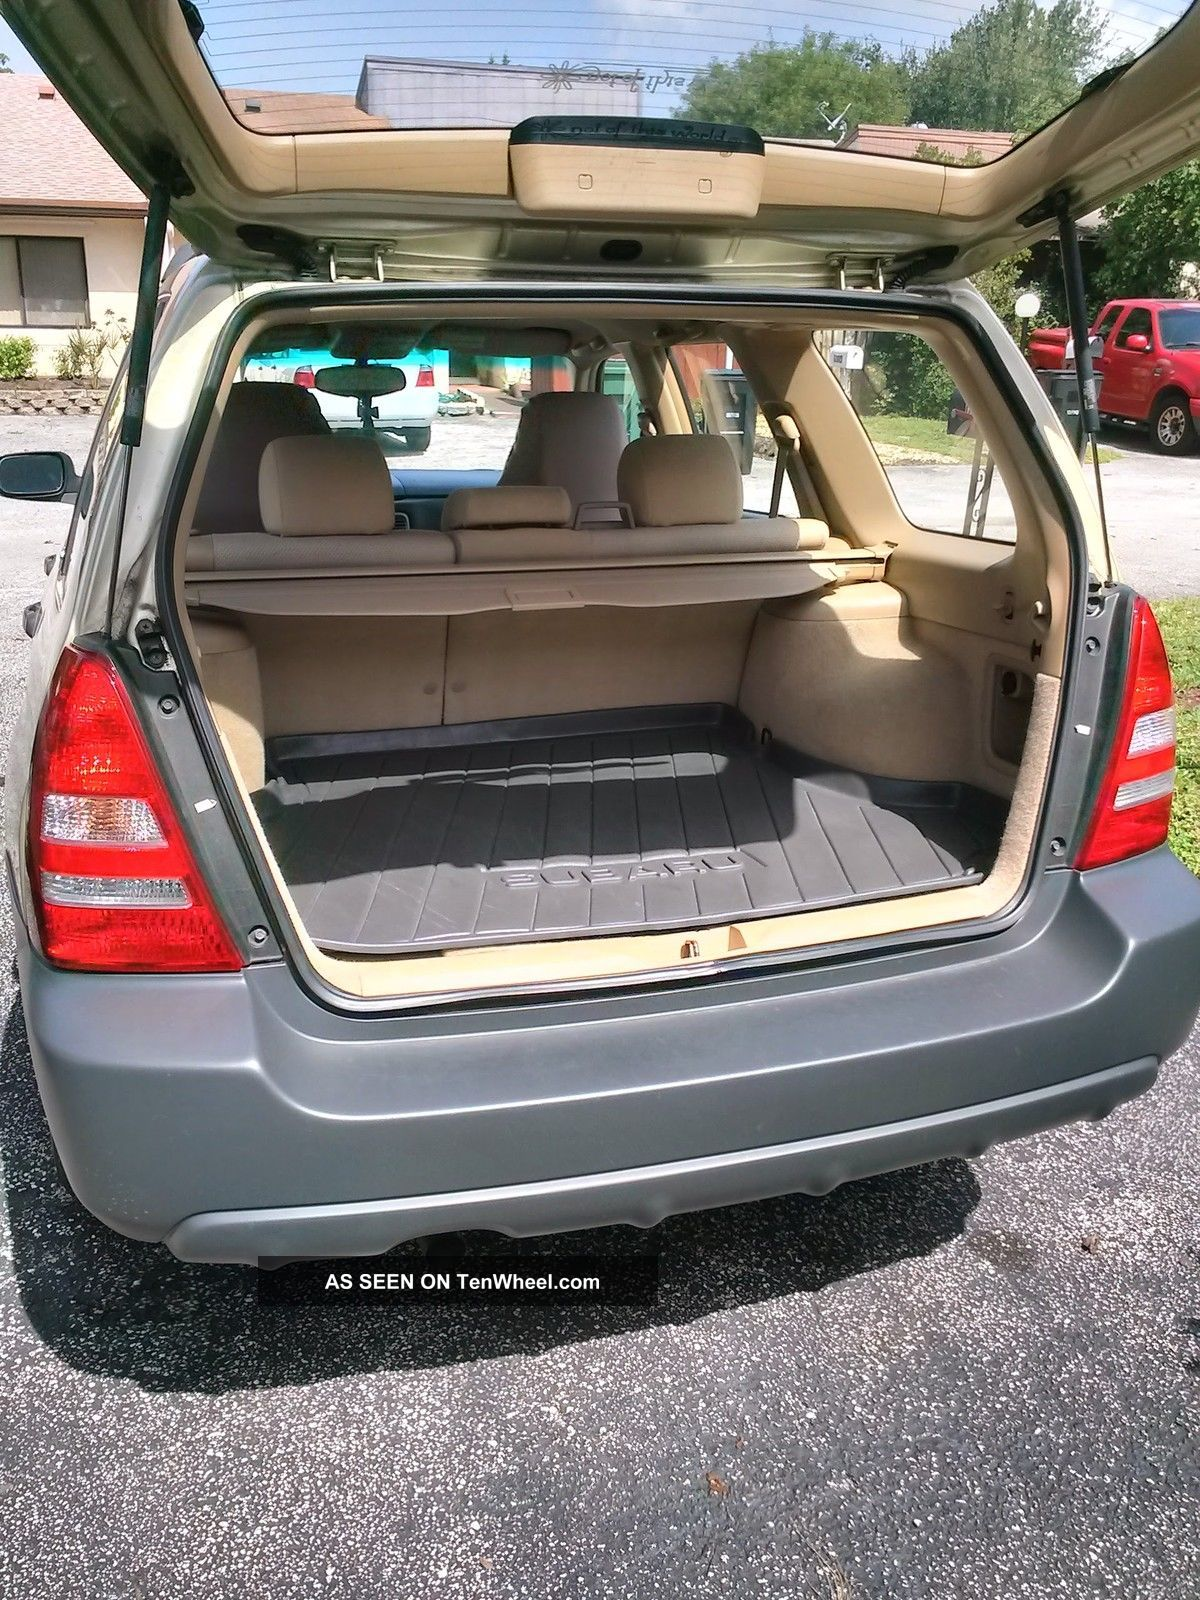 2004 subaru forester 2 5 x awd 4 speed auto overdrive very. Black Bedroom Furniture Sets. Home Design Ideas